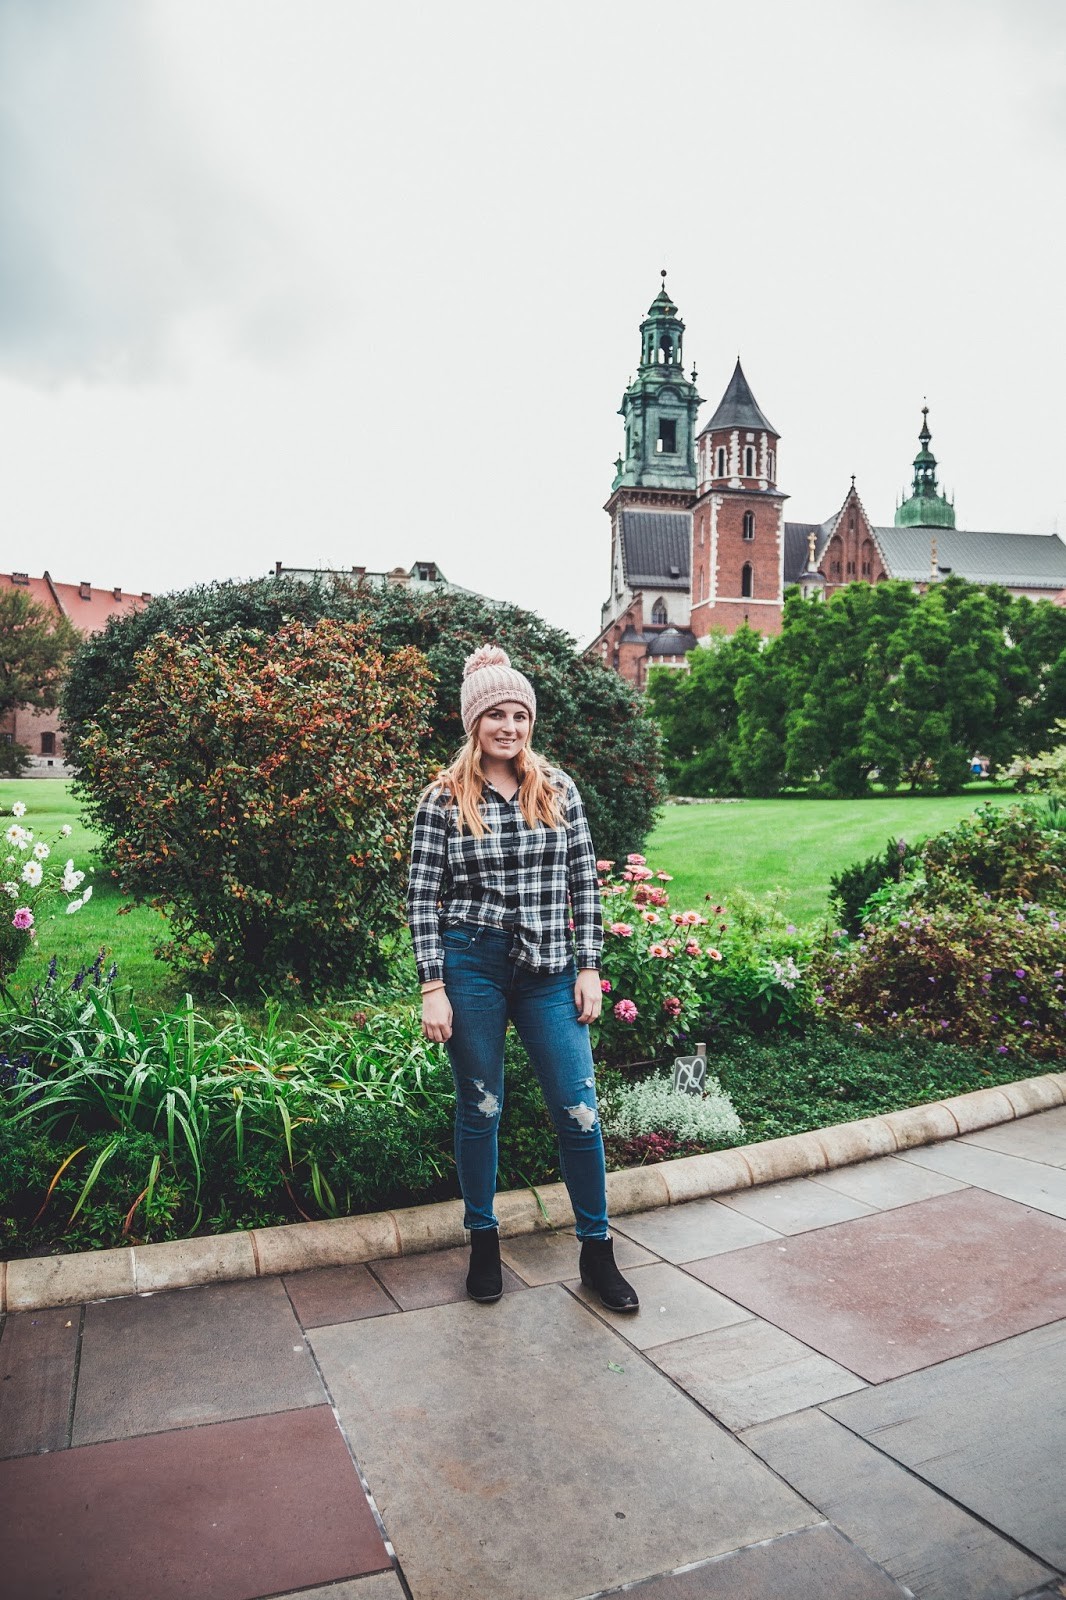 What I Wore In Europe During Autumn From Just 1 Carry-On Luggage: Poland, Amsterdam, Belgium, Copenhagen, and Ireland